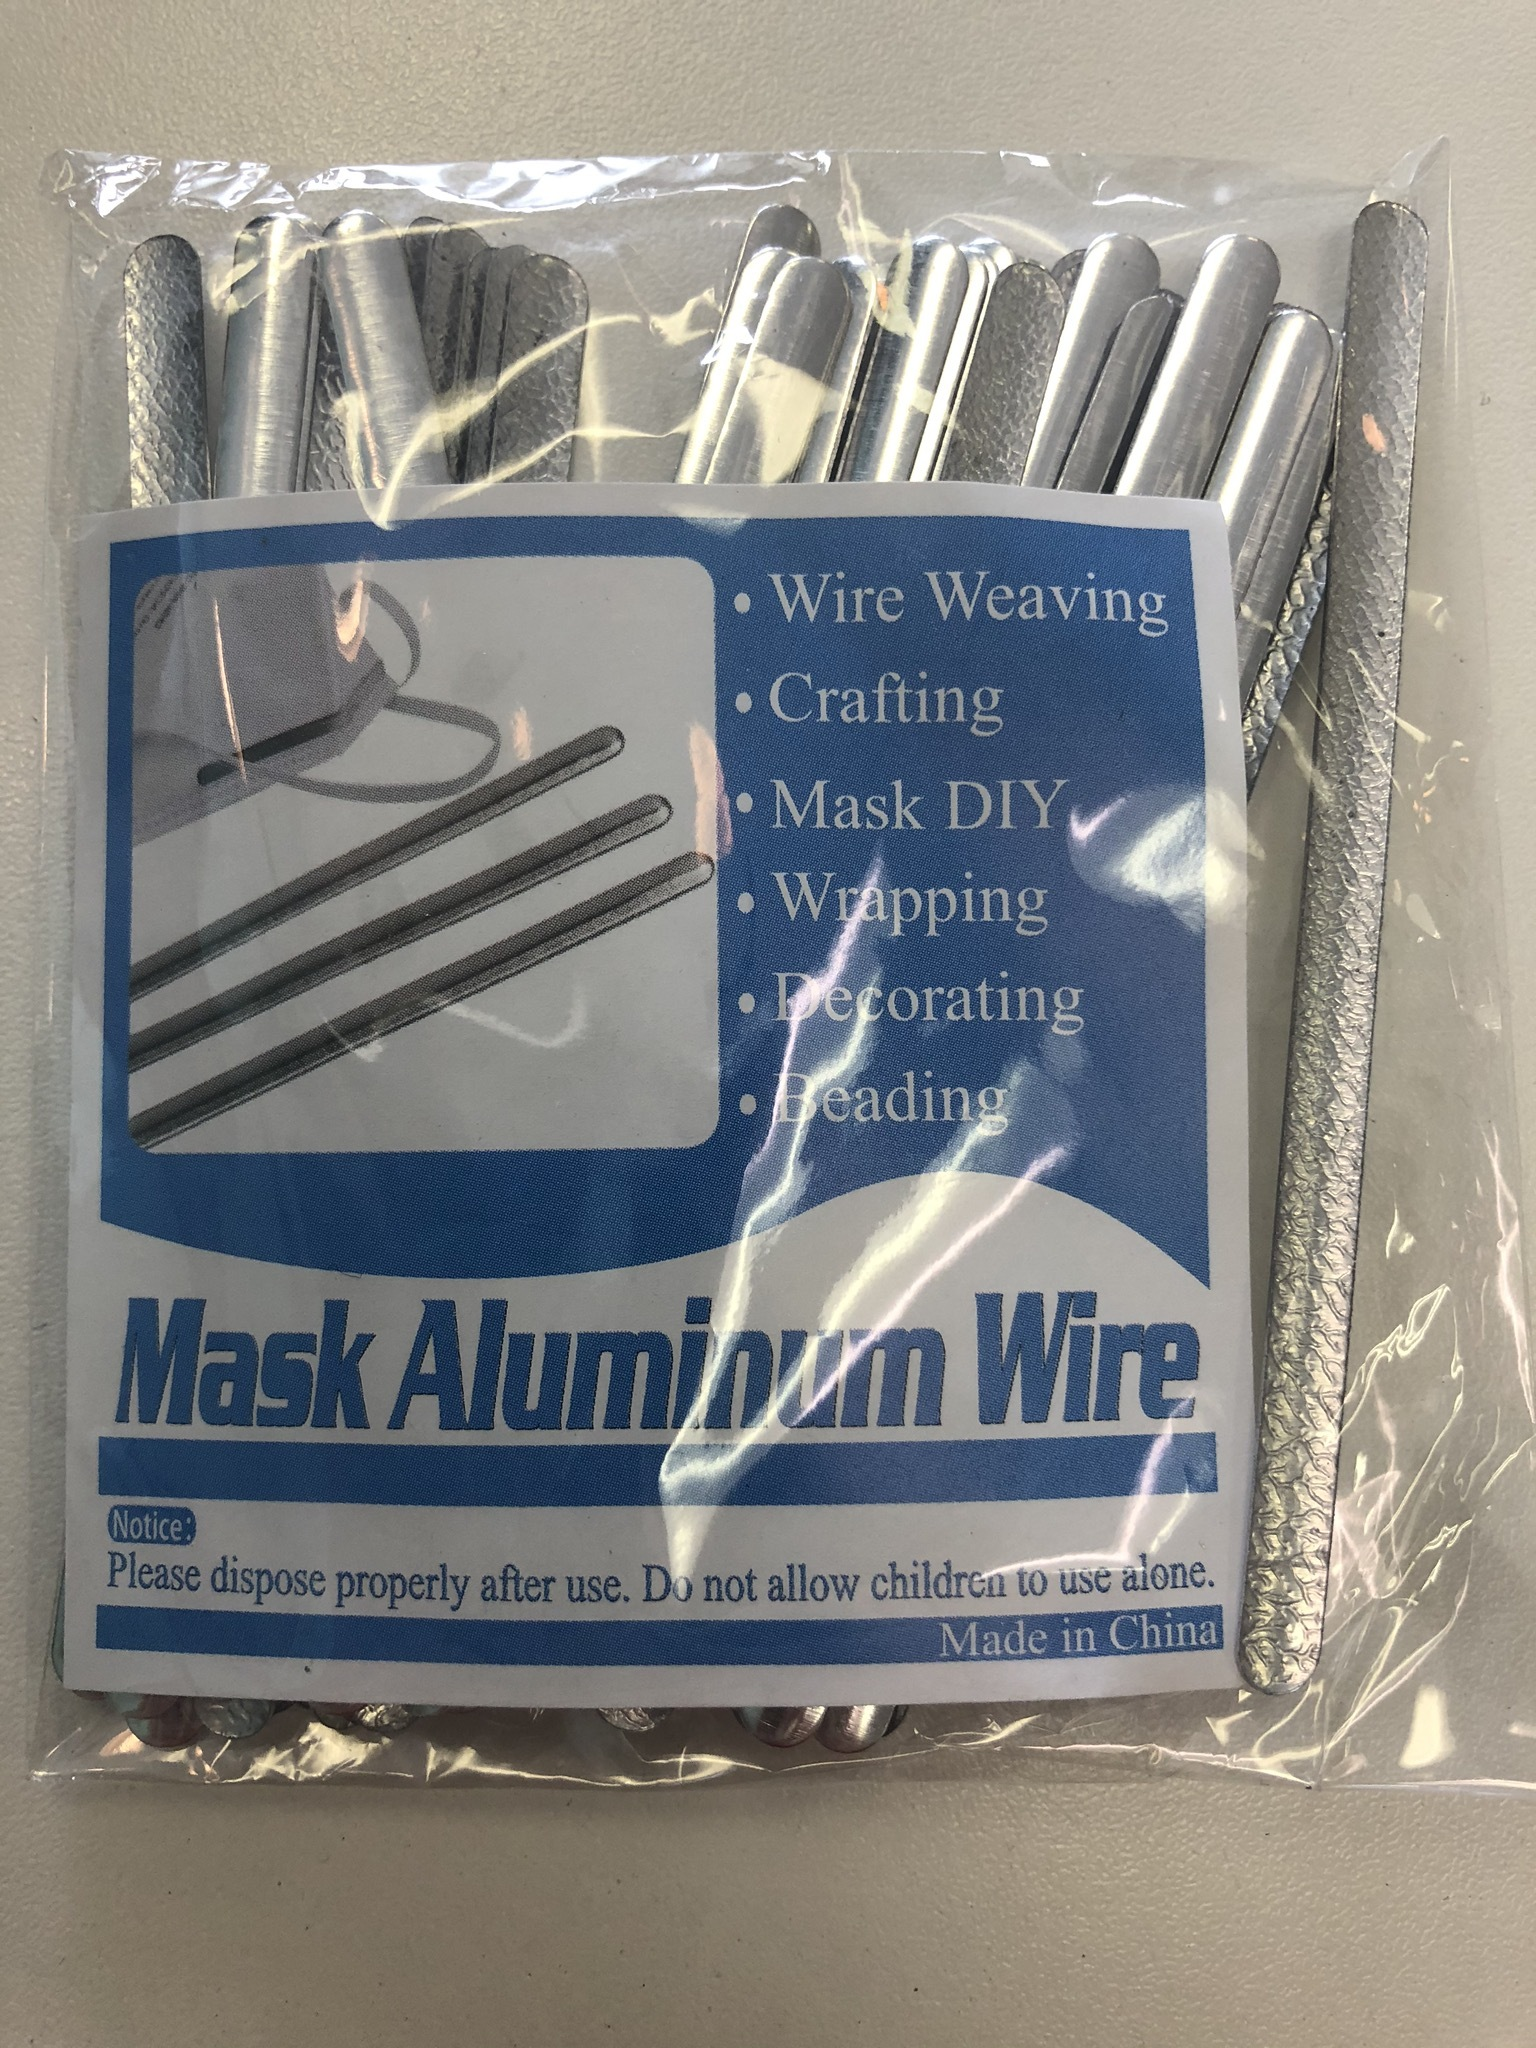 Flexible Mask Wires - 50 Pack 55479